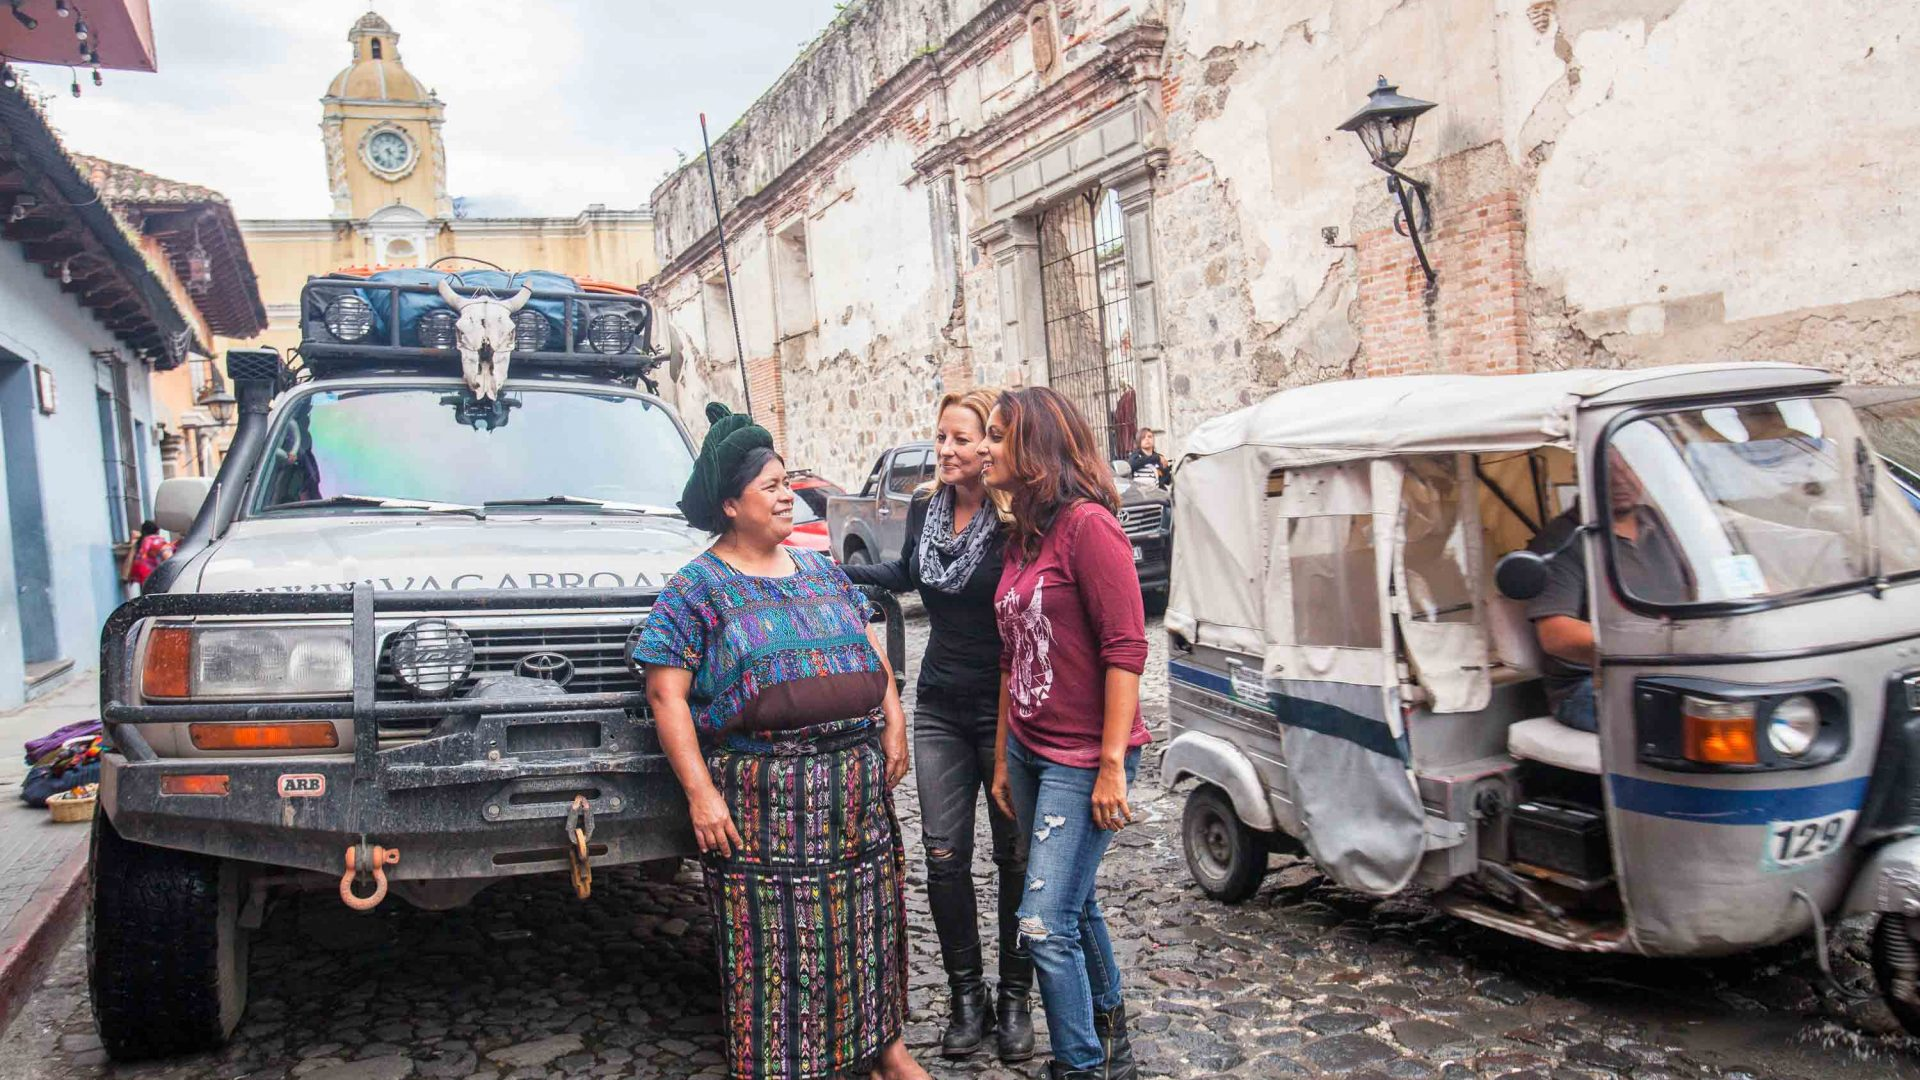 Sunny and Karin chat with a local in Antigua, Guatemala.